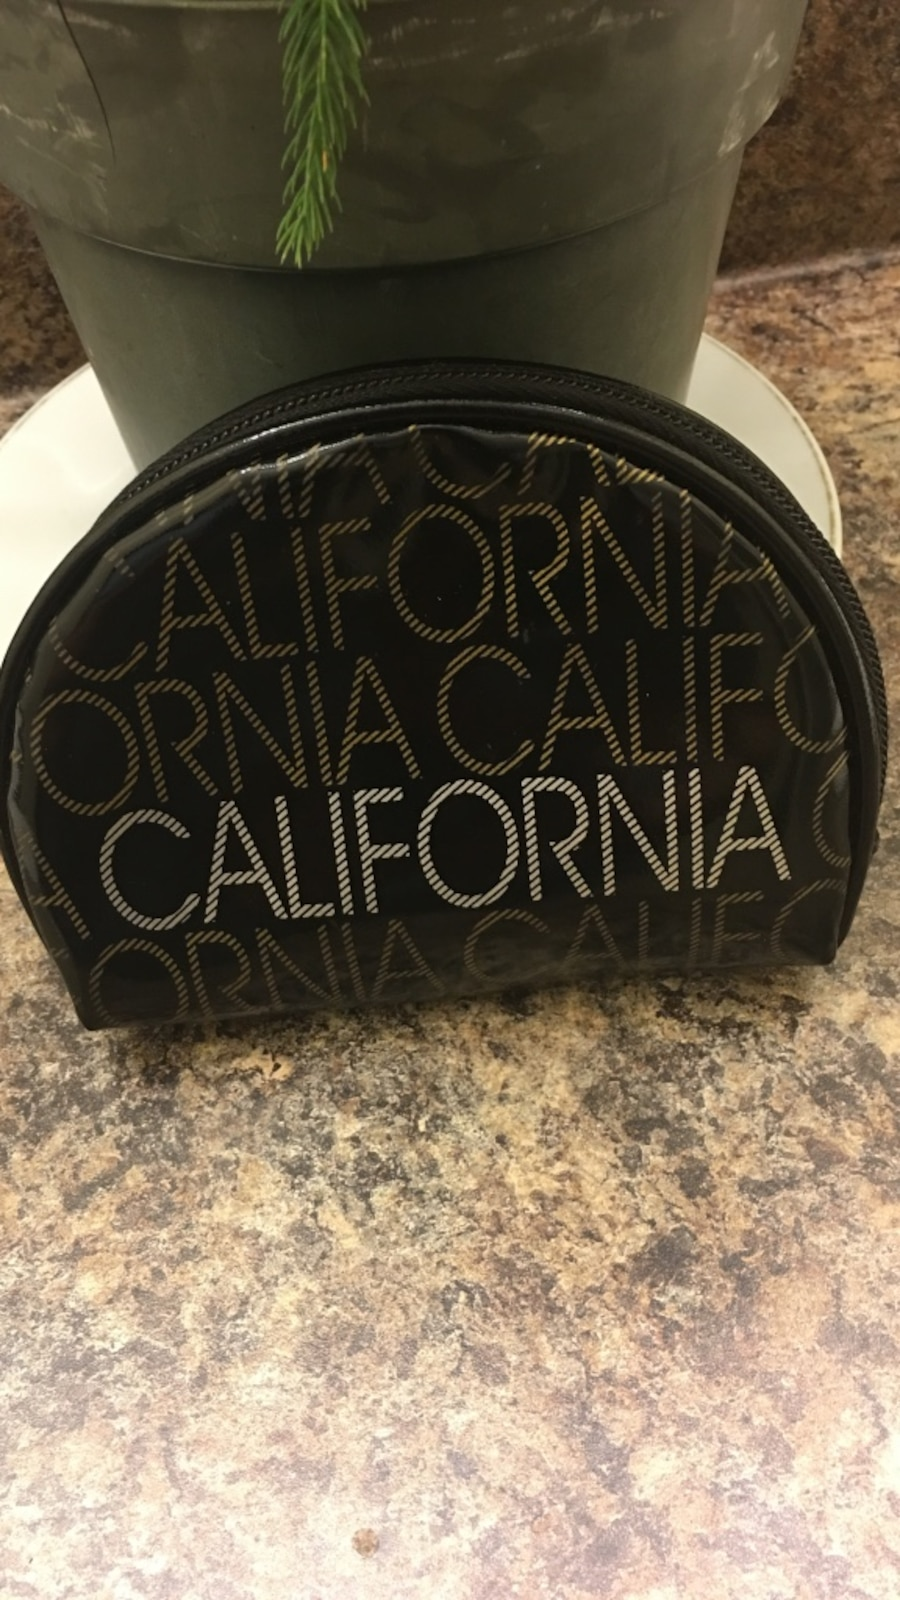 black patent leather California pouch